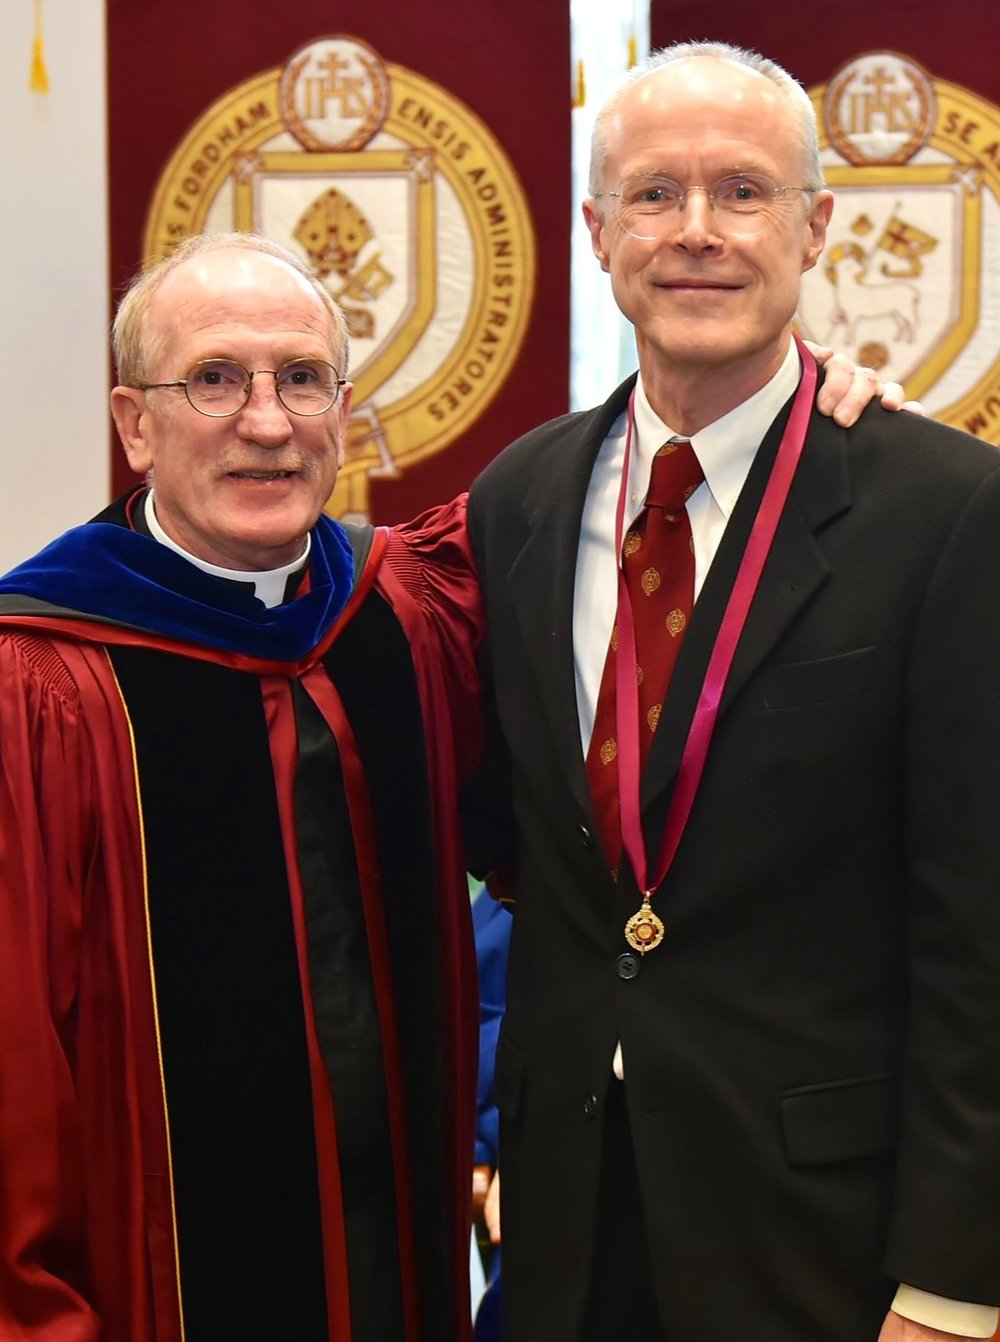 President McShane and Professor Chase